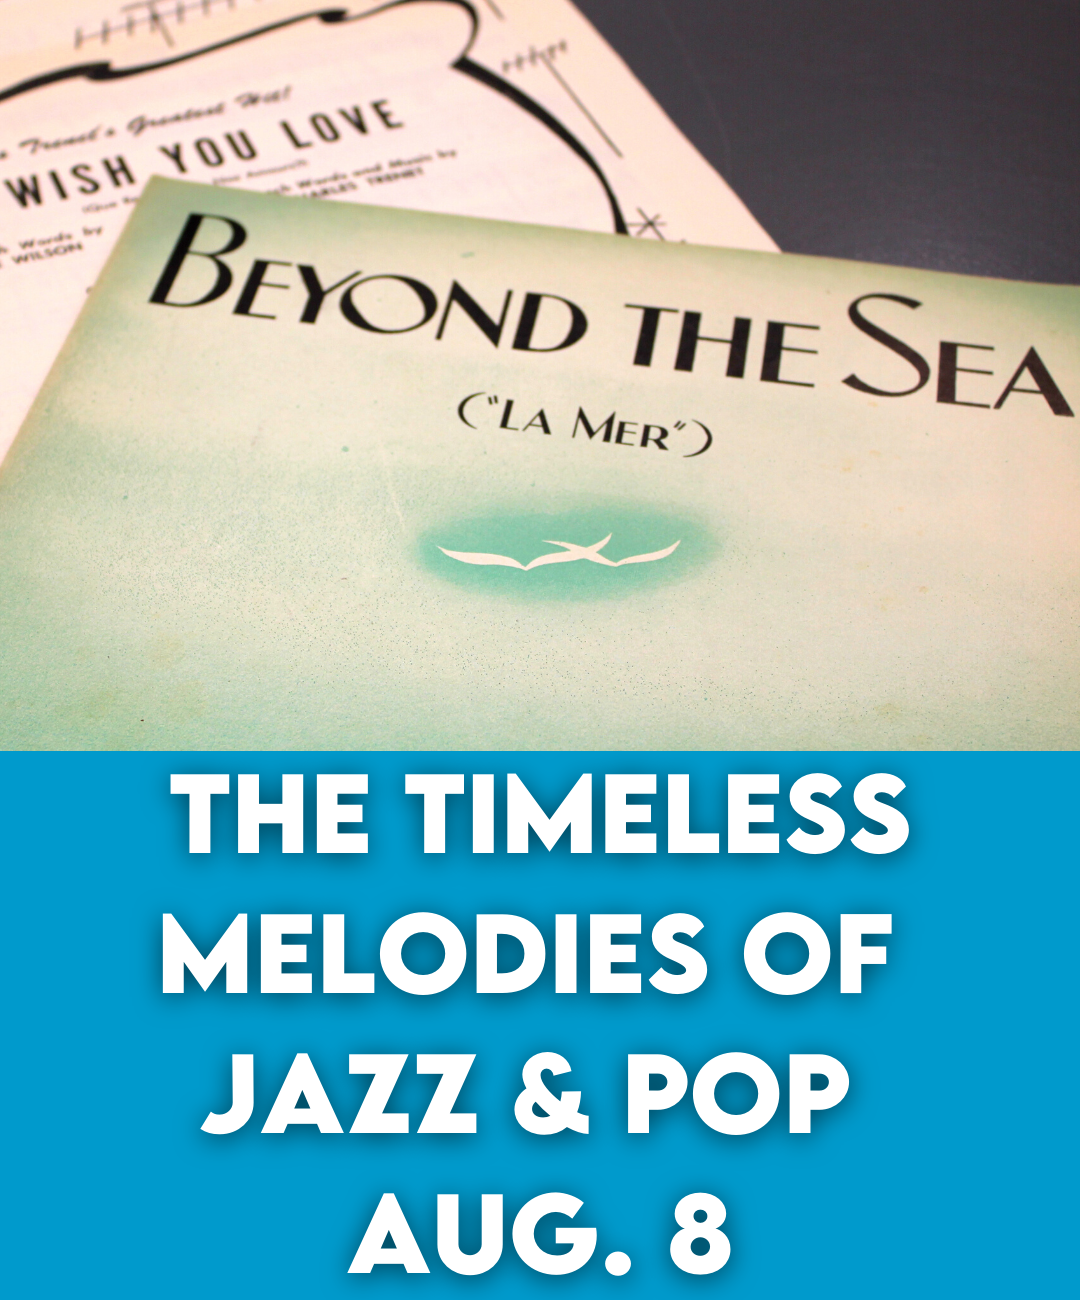 The Timeless Melodies of Jazz & Pop